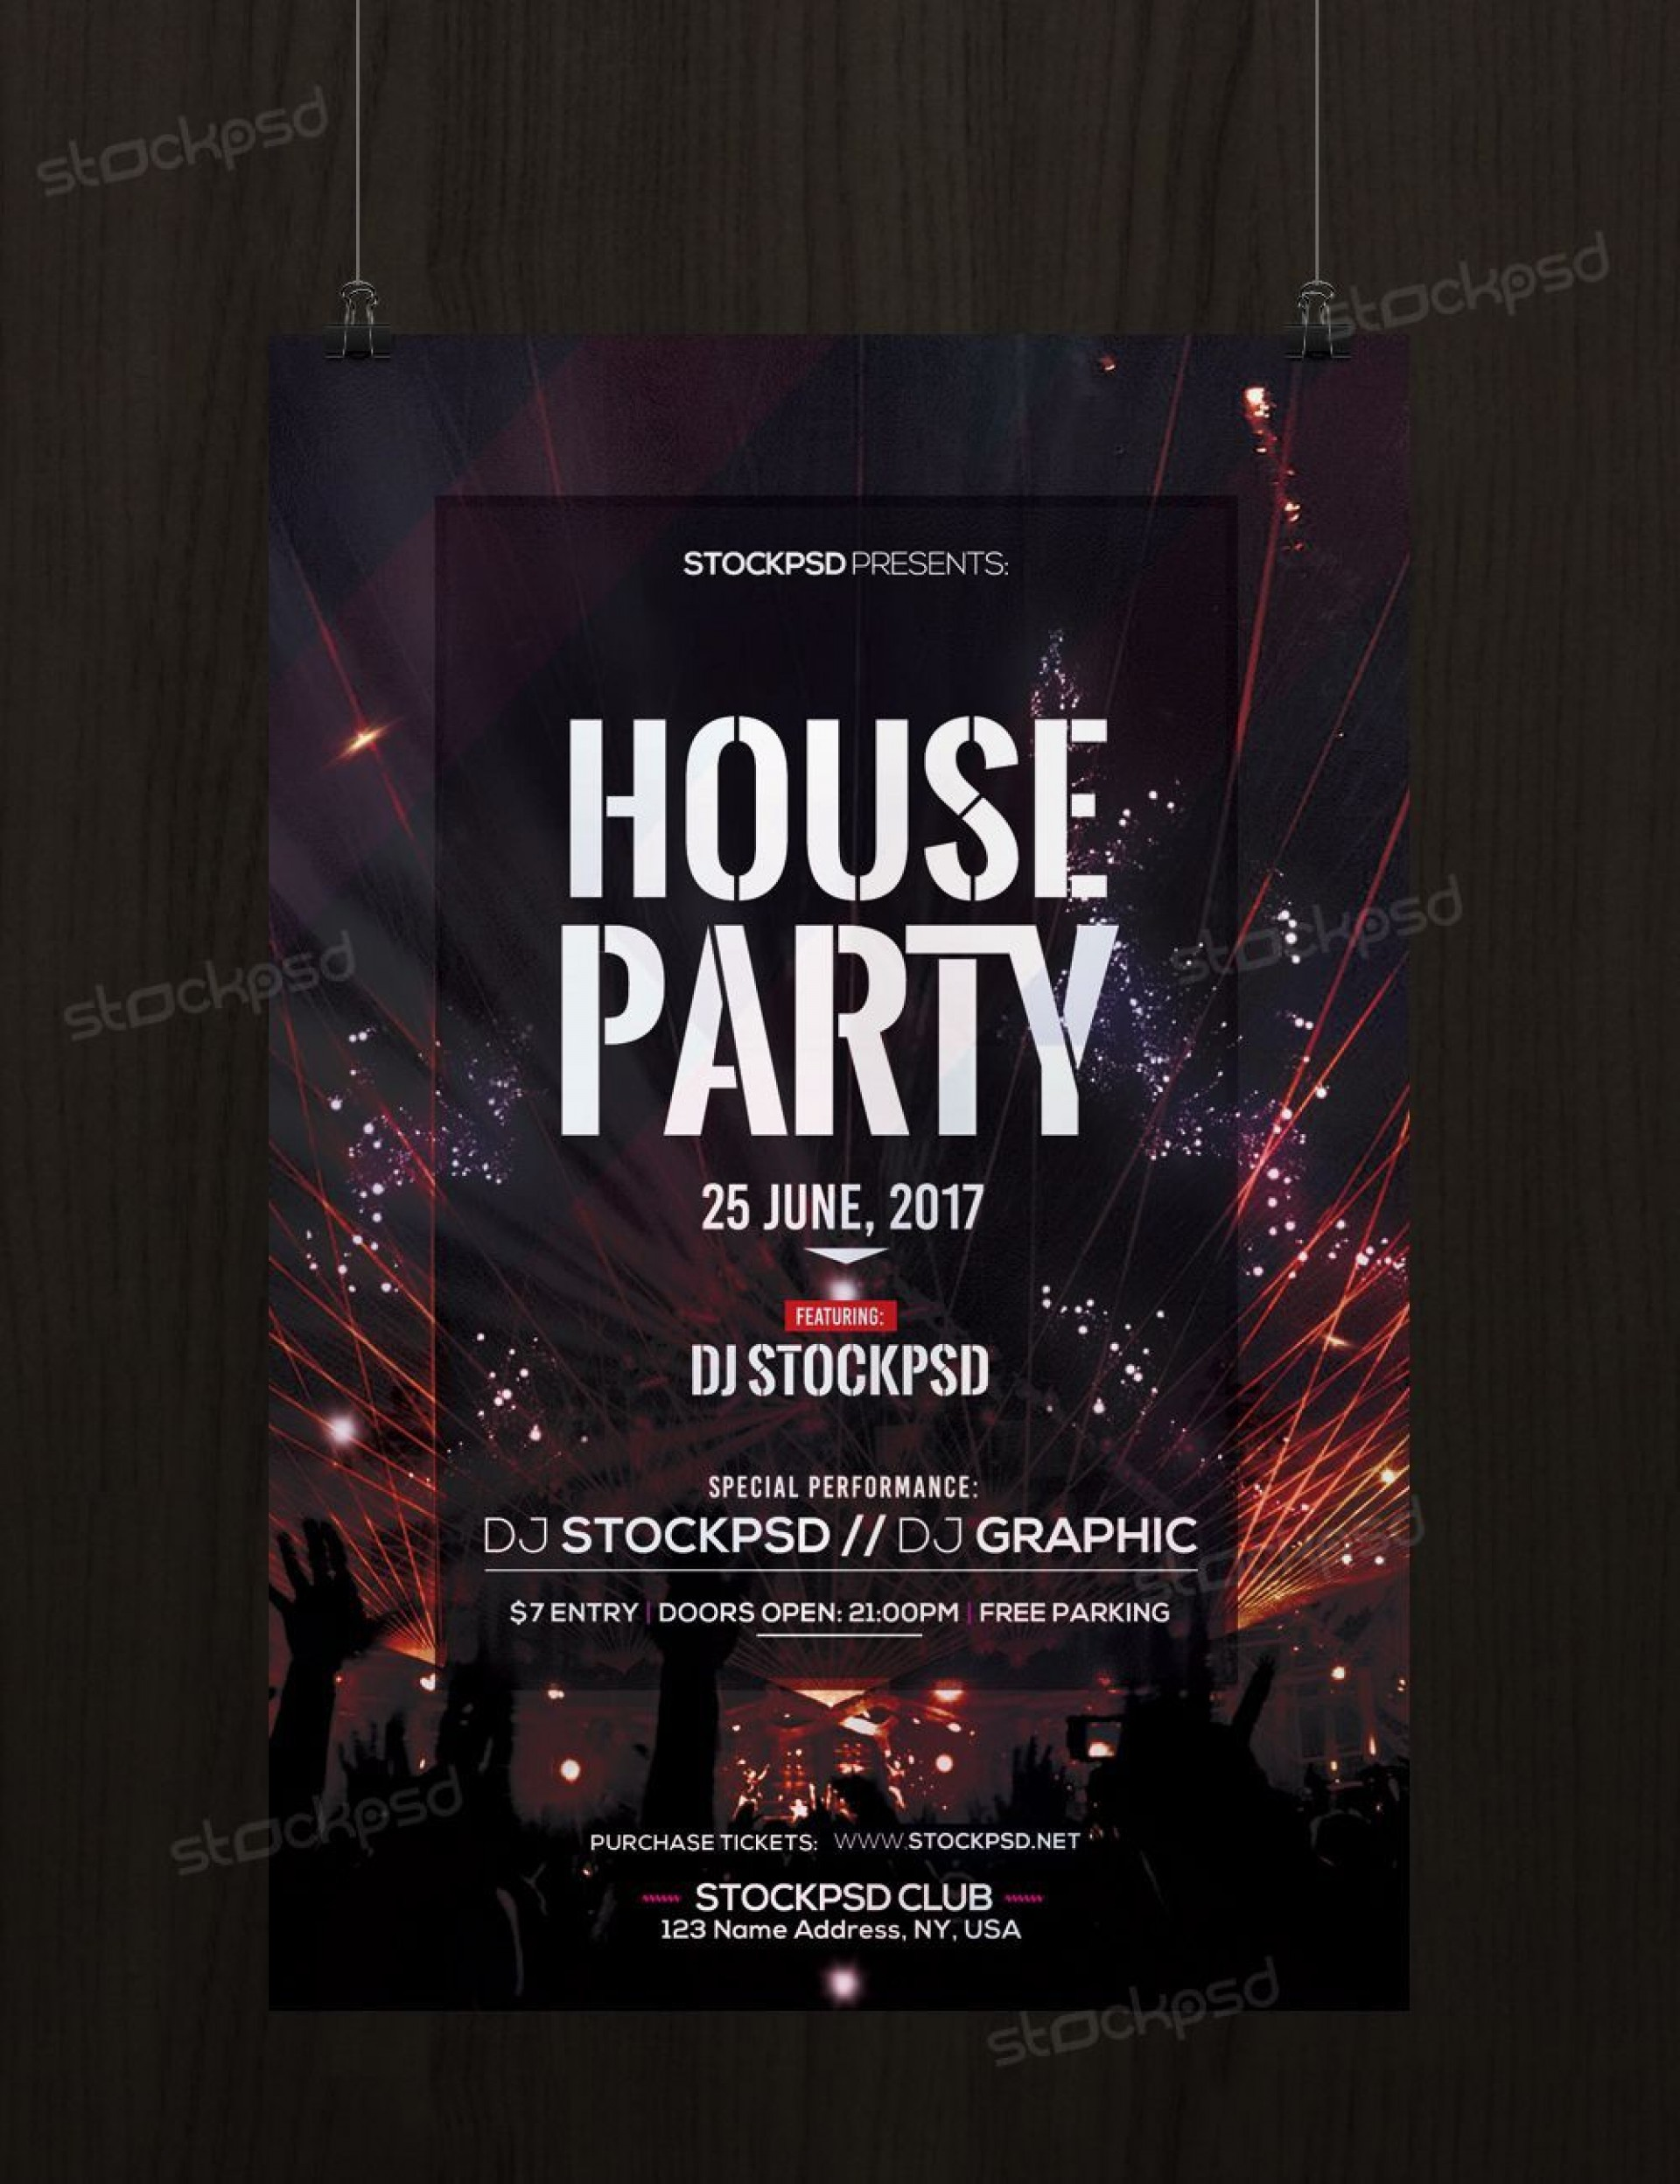 002 Excellent Free Psd Party Flyer Template Download Idea  - Neon Glow Rave1920